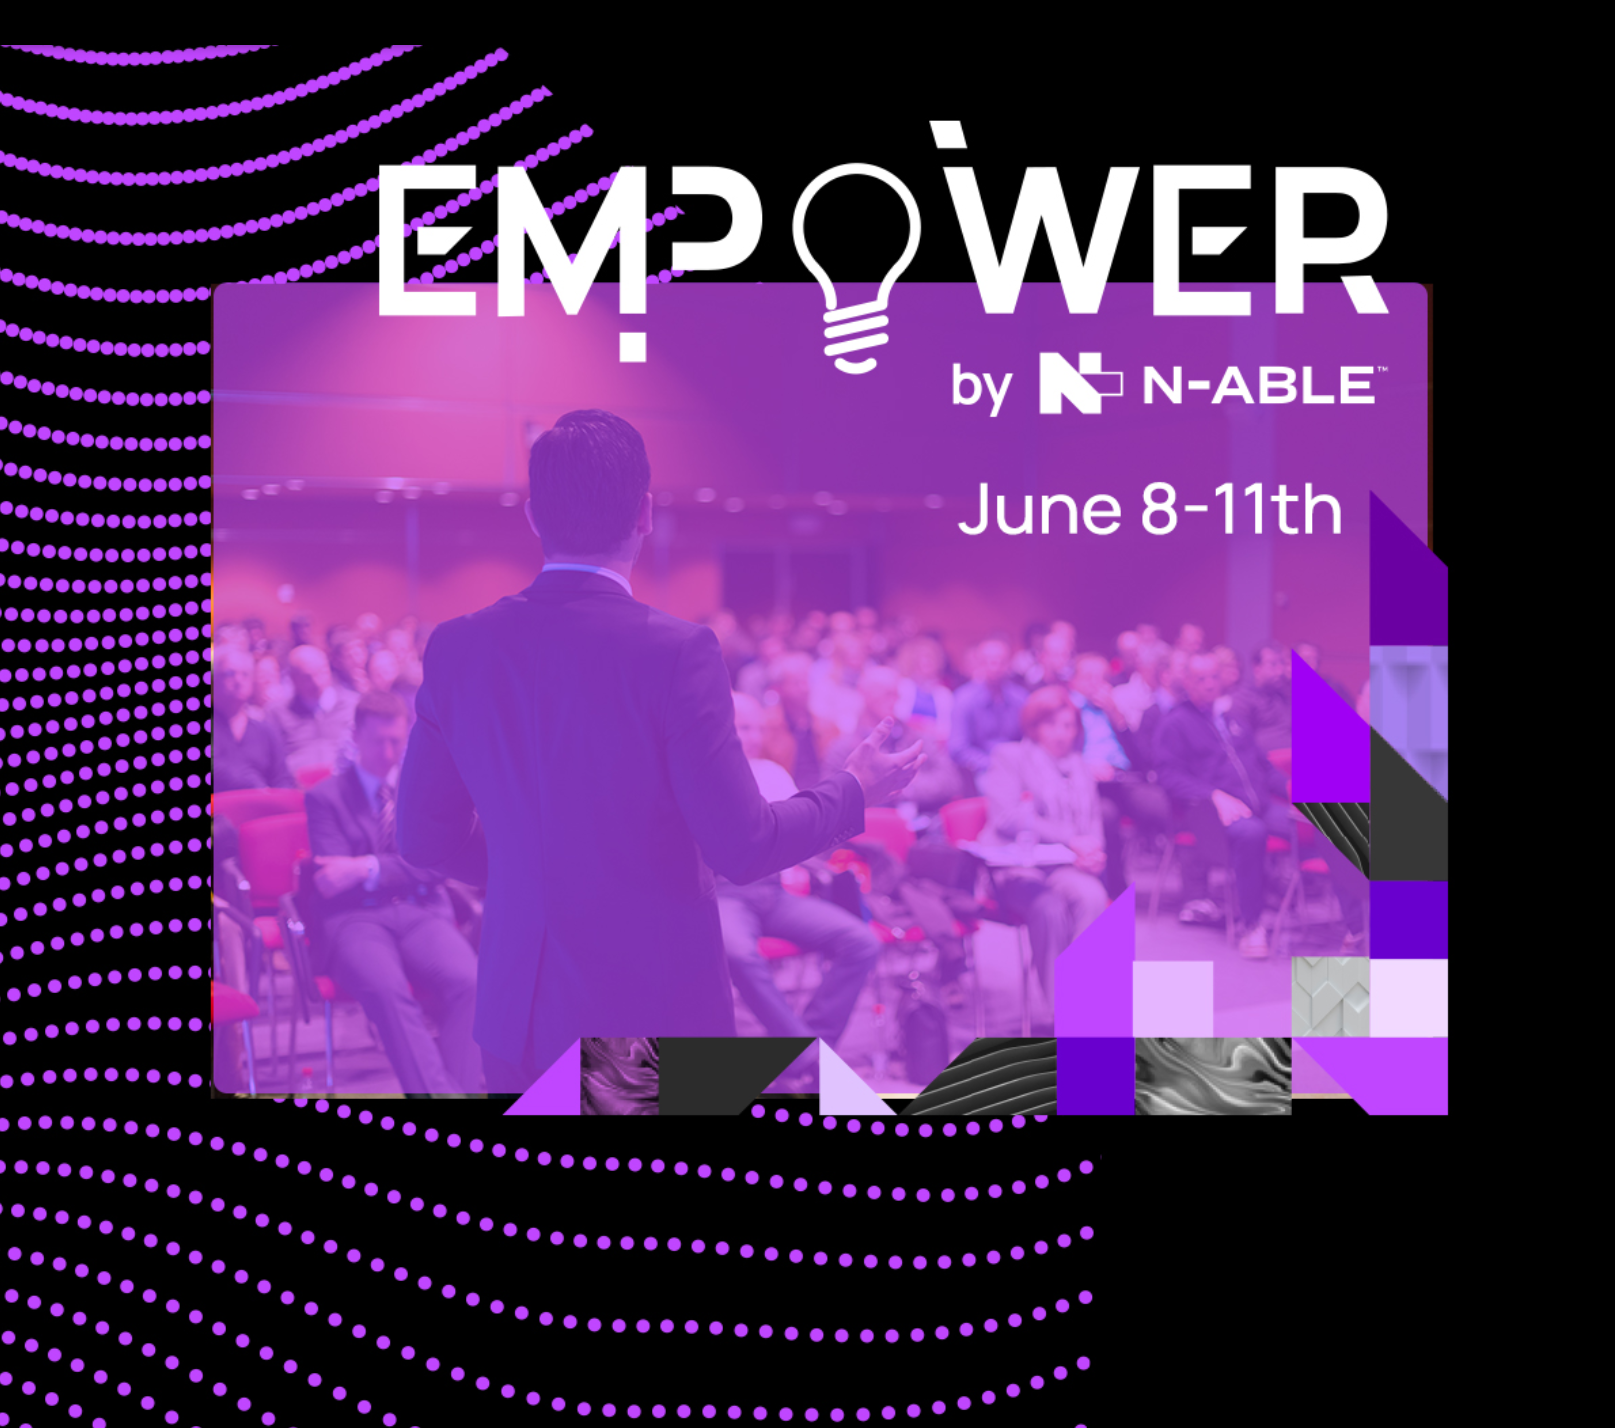 Catch bvoip at Empower by N-Able from June 8-11th.